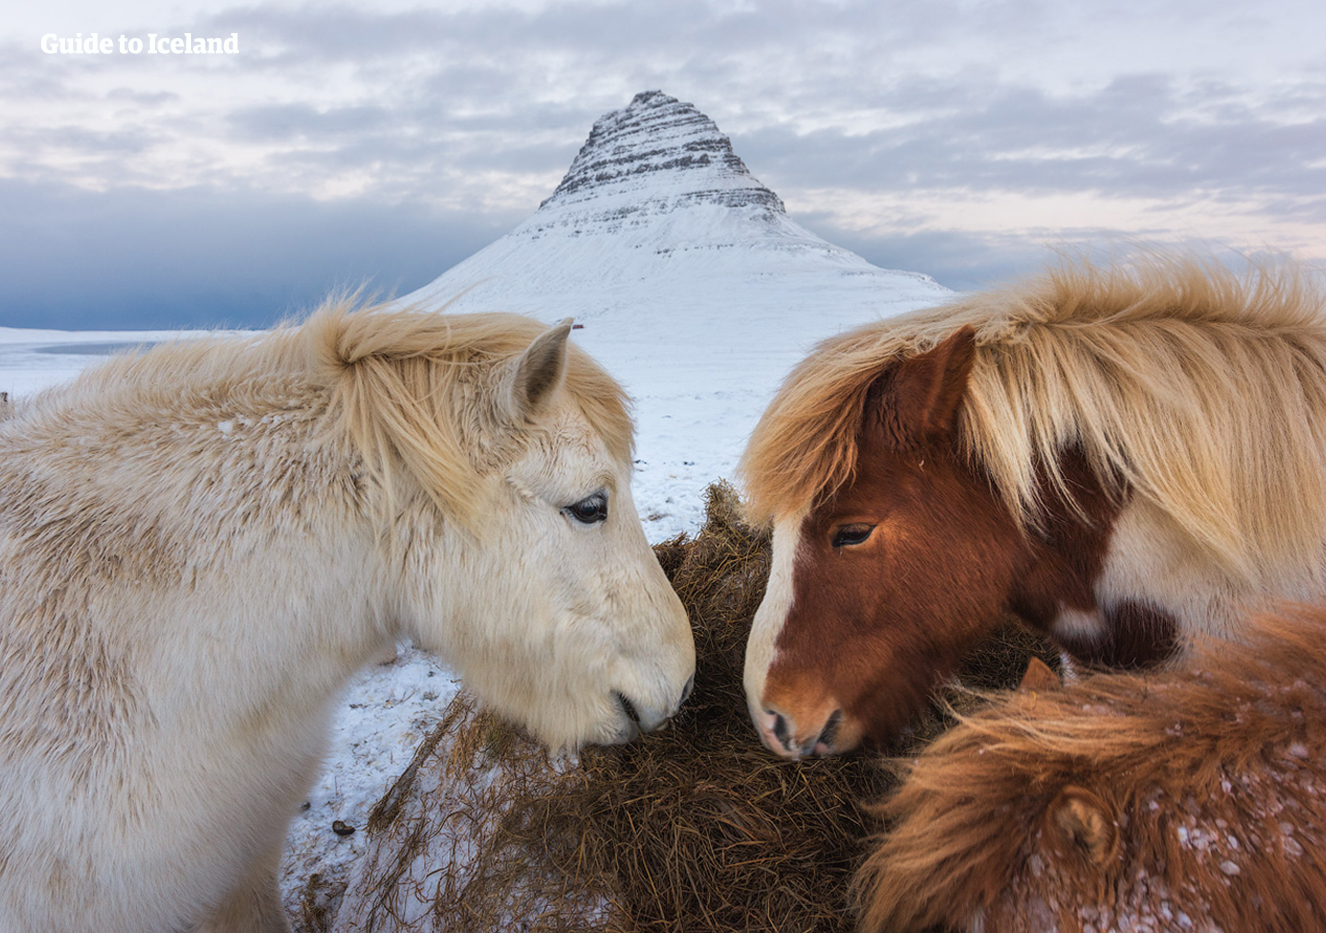 Icelandic horses in front of the majestic Kirkjufell mountain on the Snæfellsnes Peninsula.